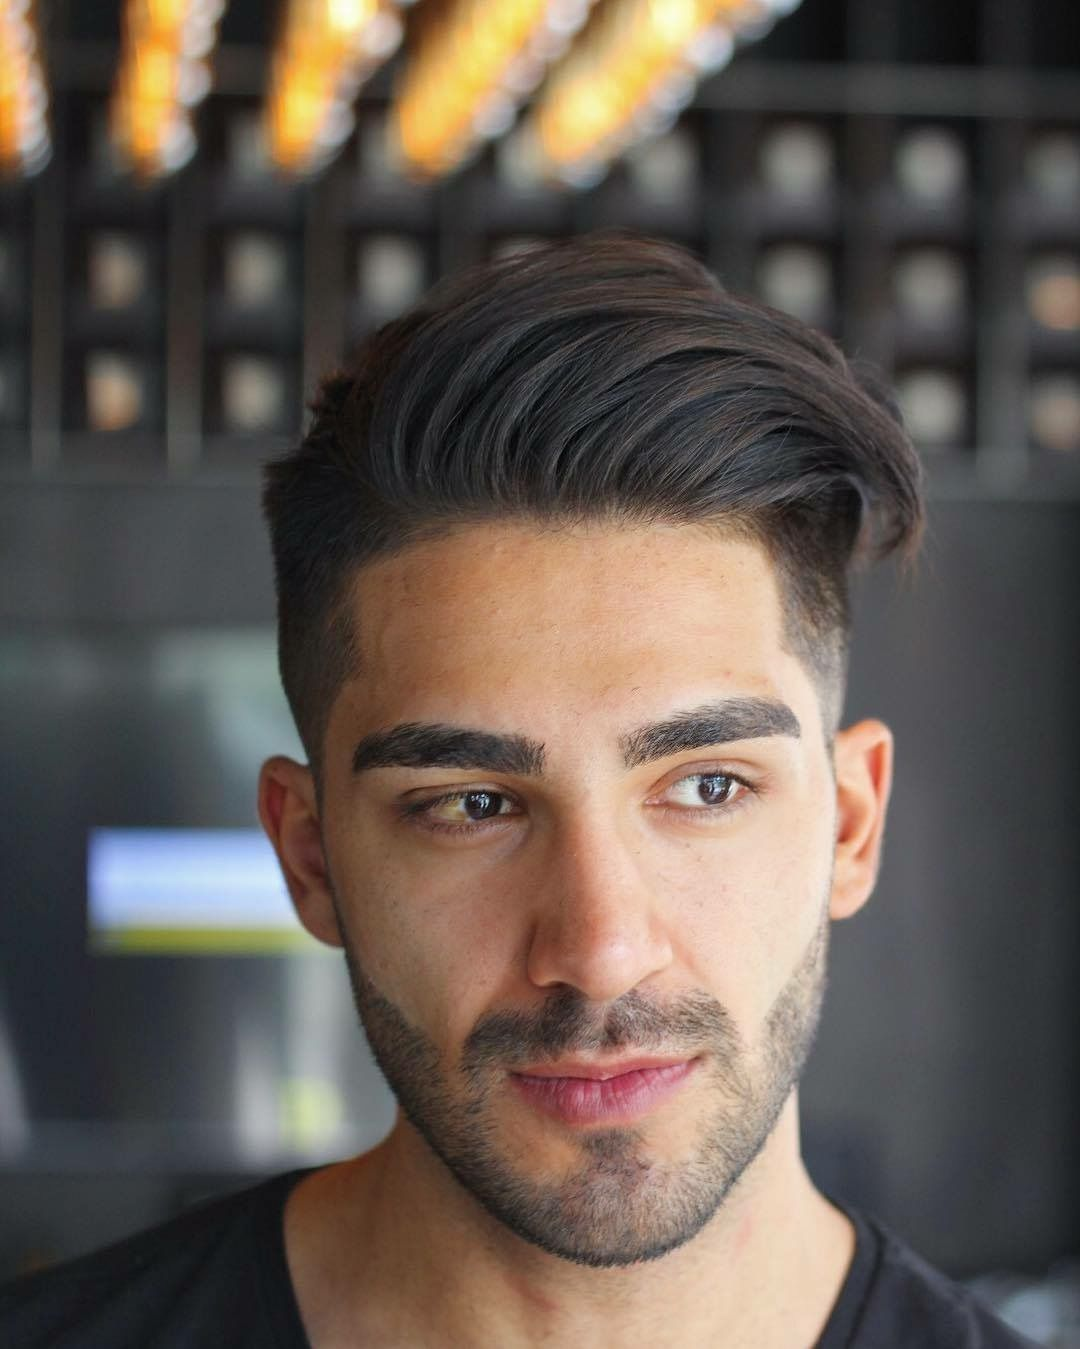 Pin by Pinz INK on Hảir in 2019 | Haircuts for men, Short ...